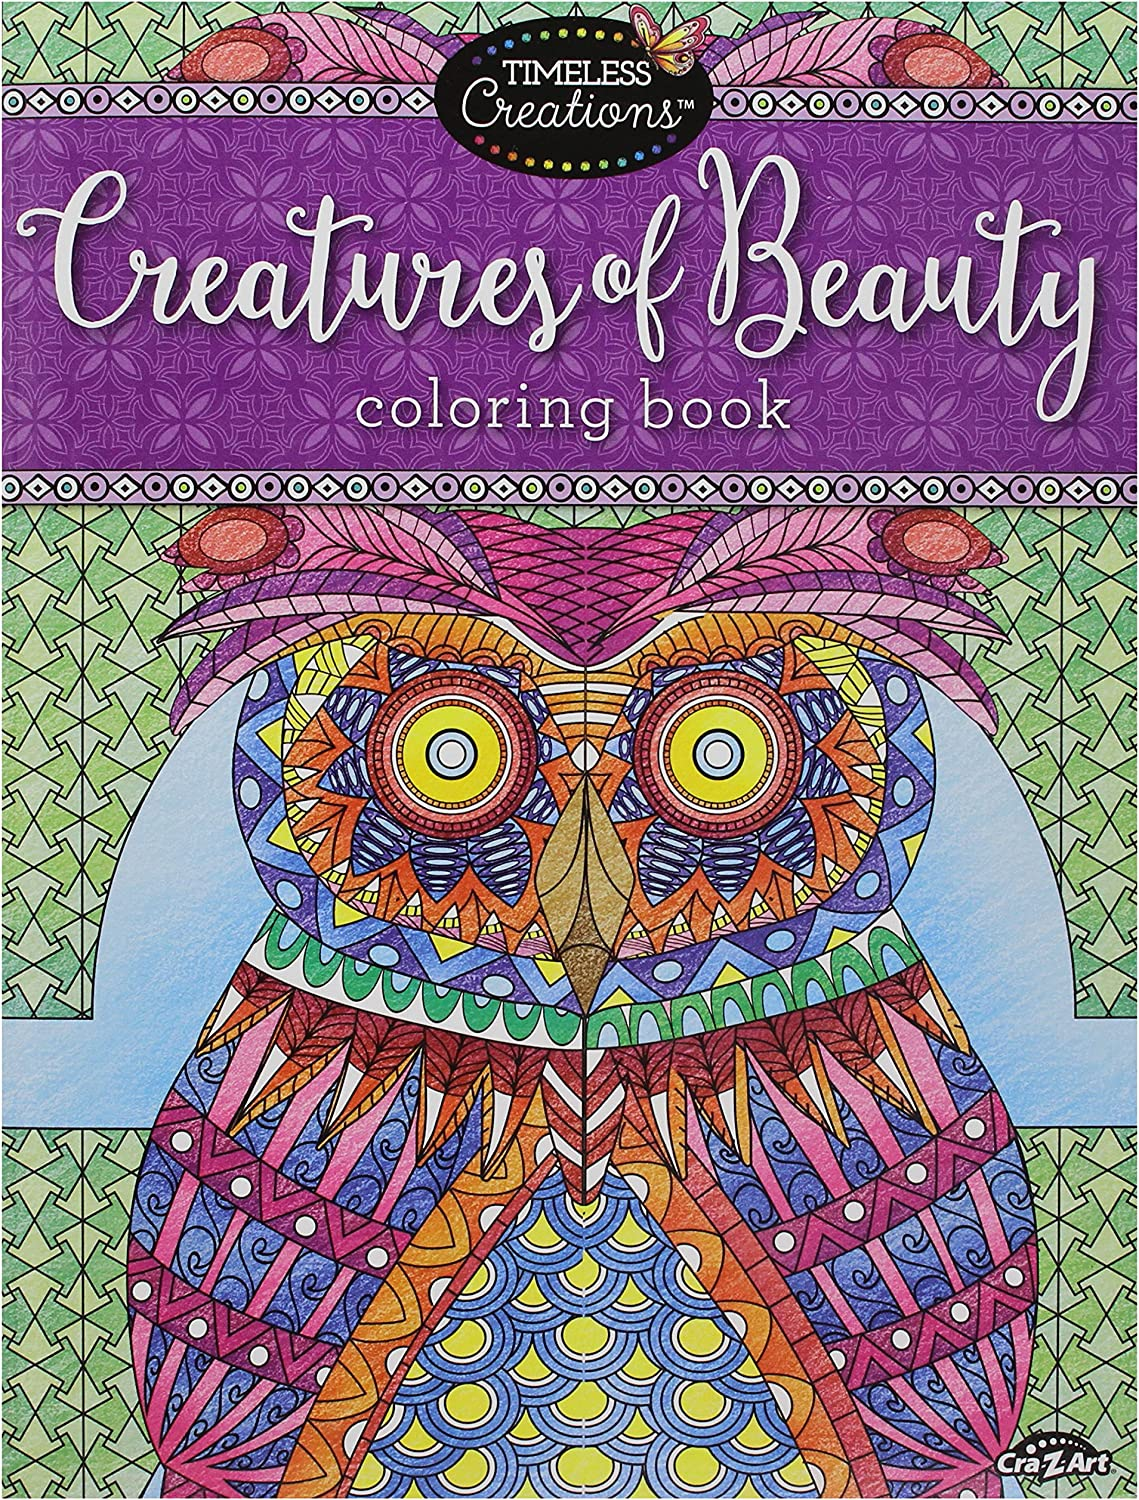 - Amazon.com : Cra-Z-Art Timeless Creations Adult Coloring Books